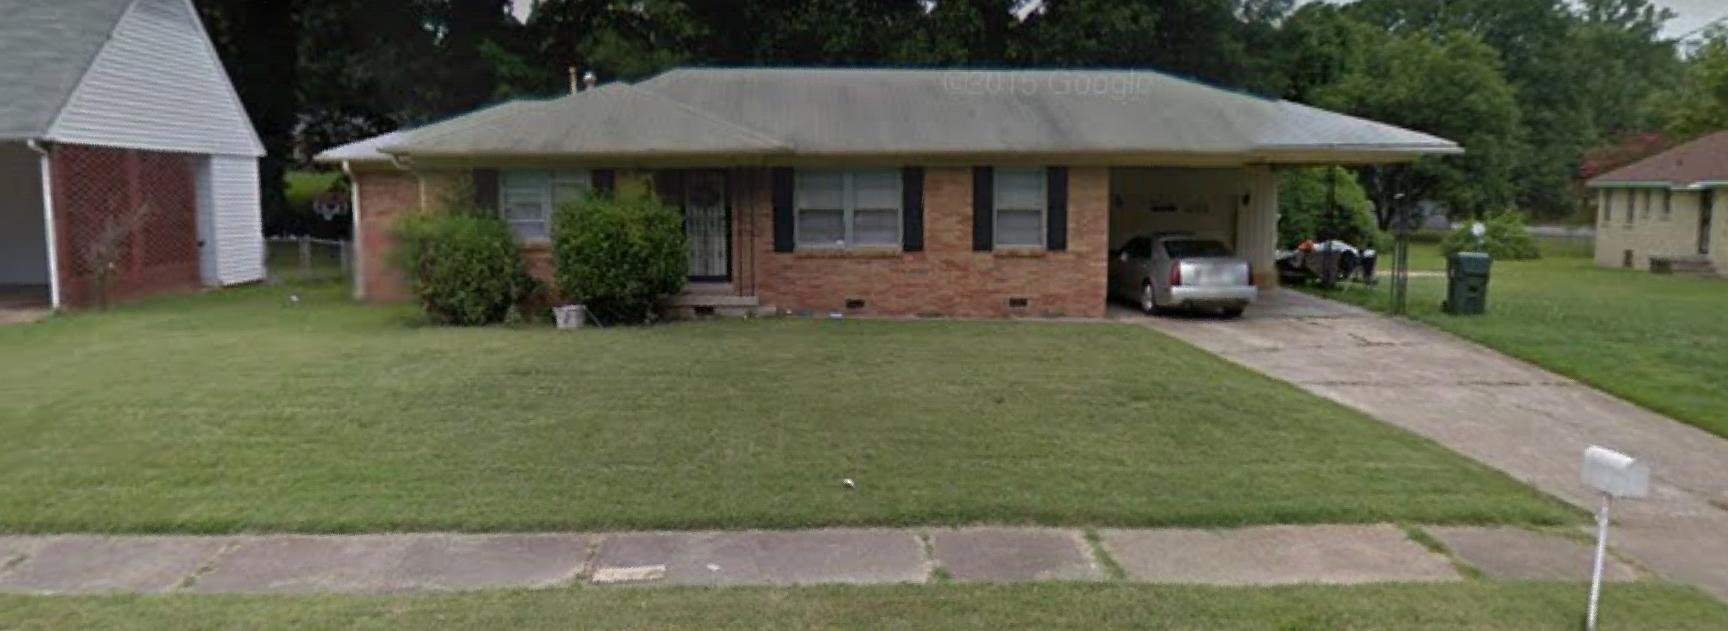 Best Design Exciting Houses For Rent In Memphis Tn No Credit Check Review — Lesstestingmorelearning Com With Pictures